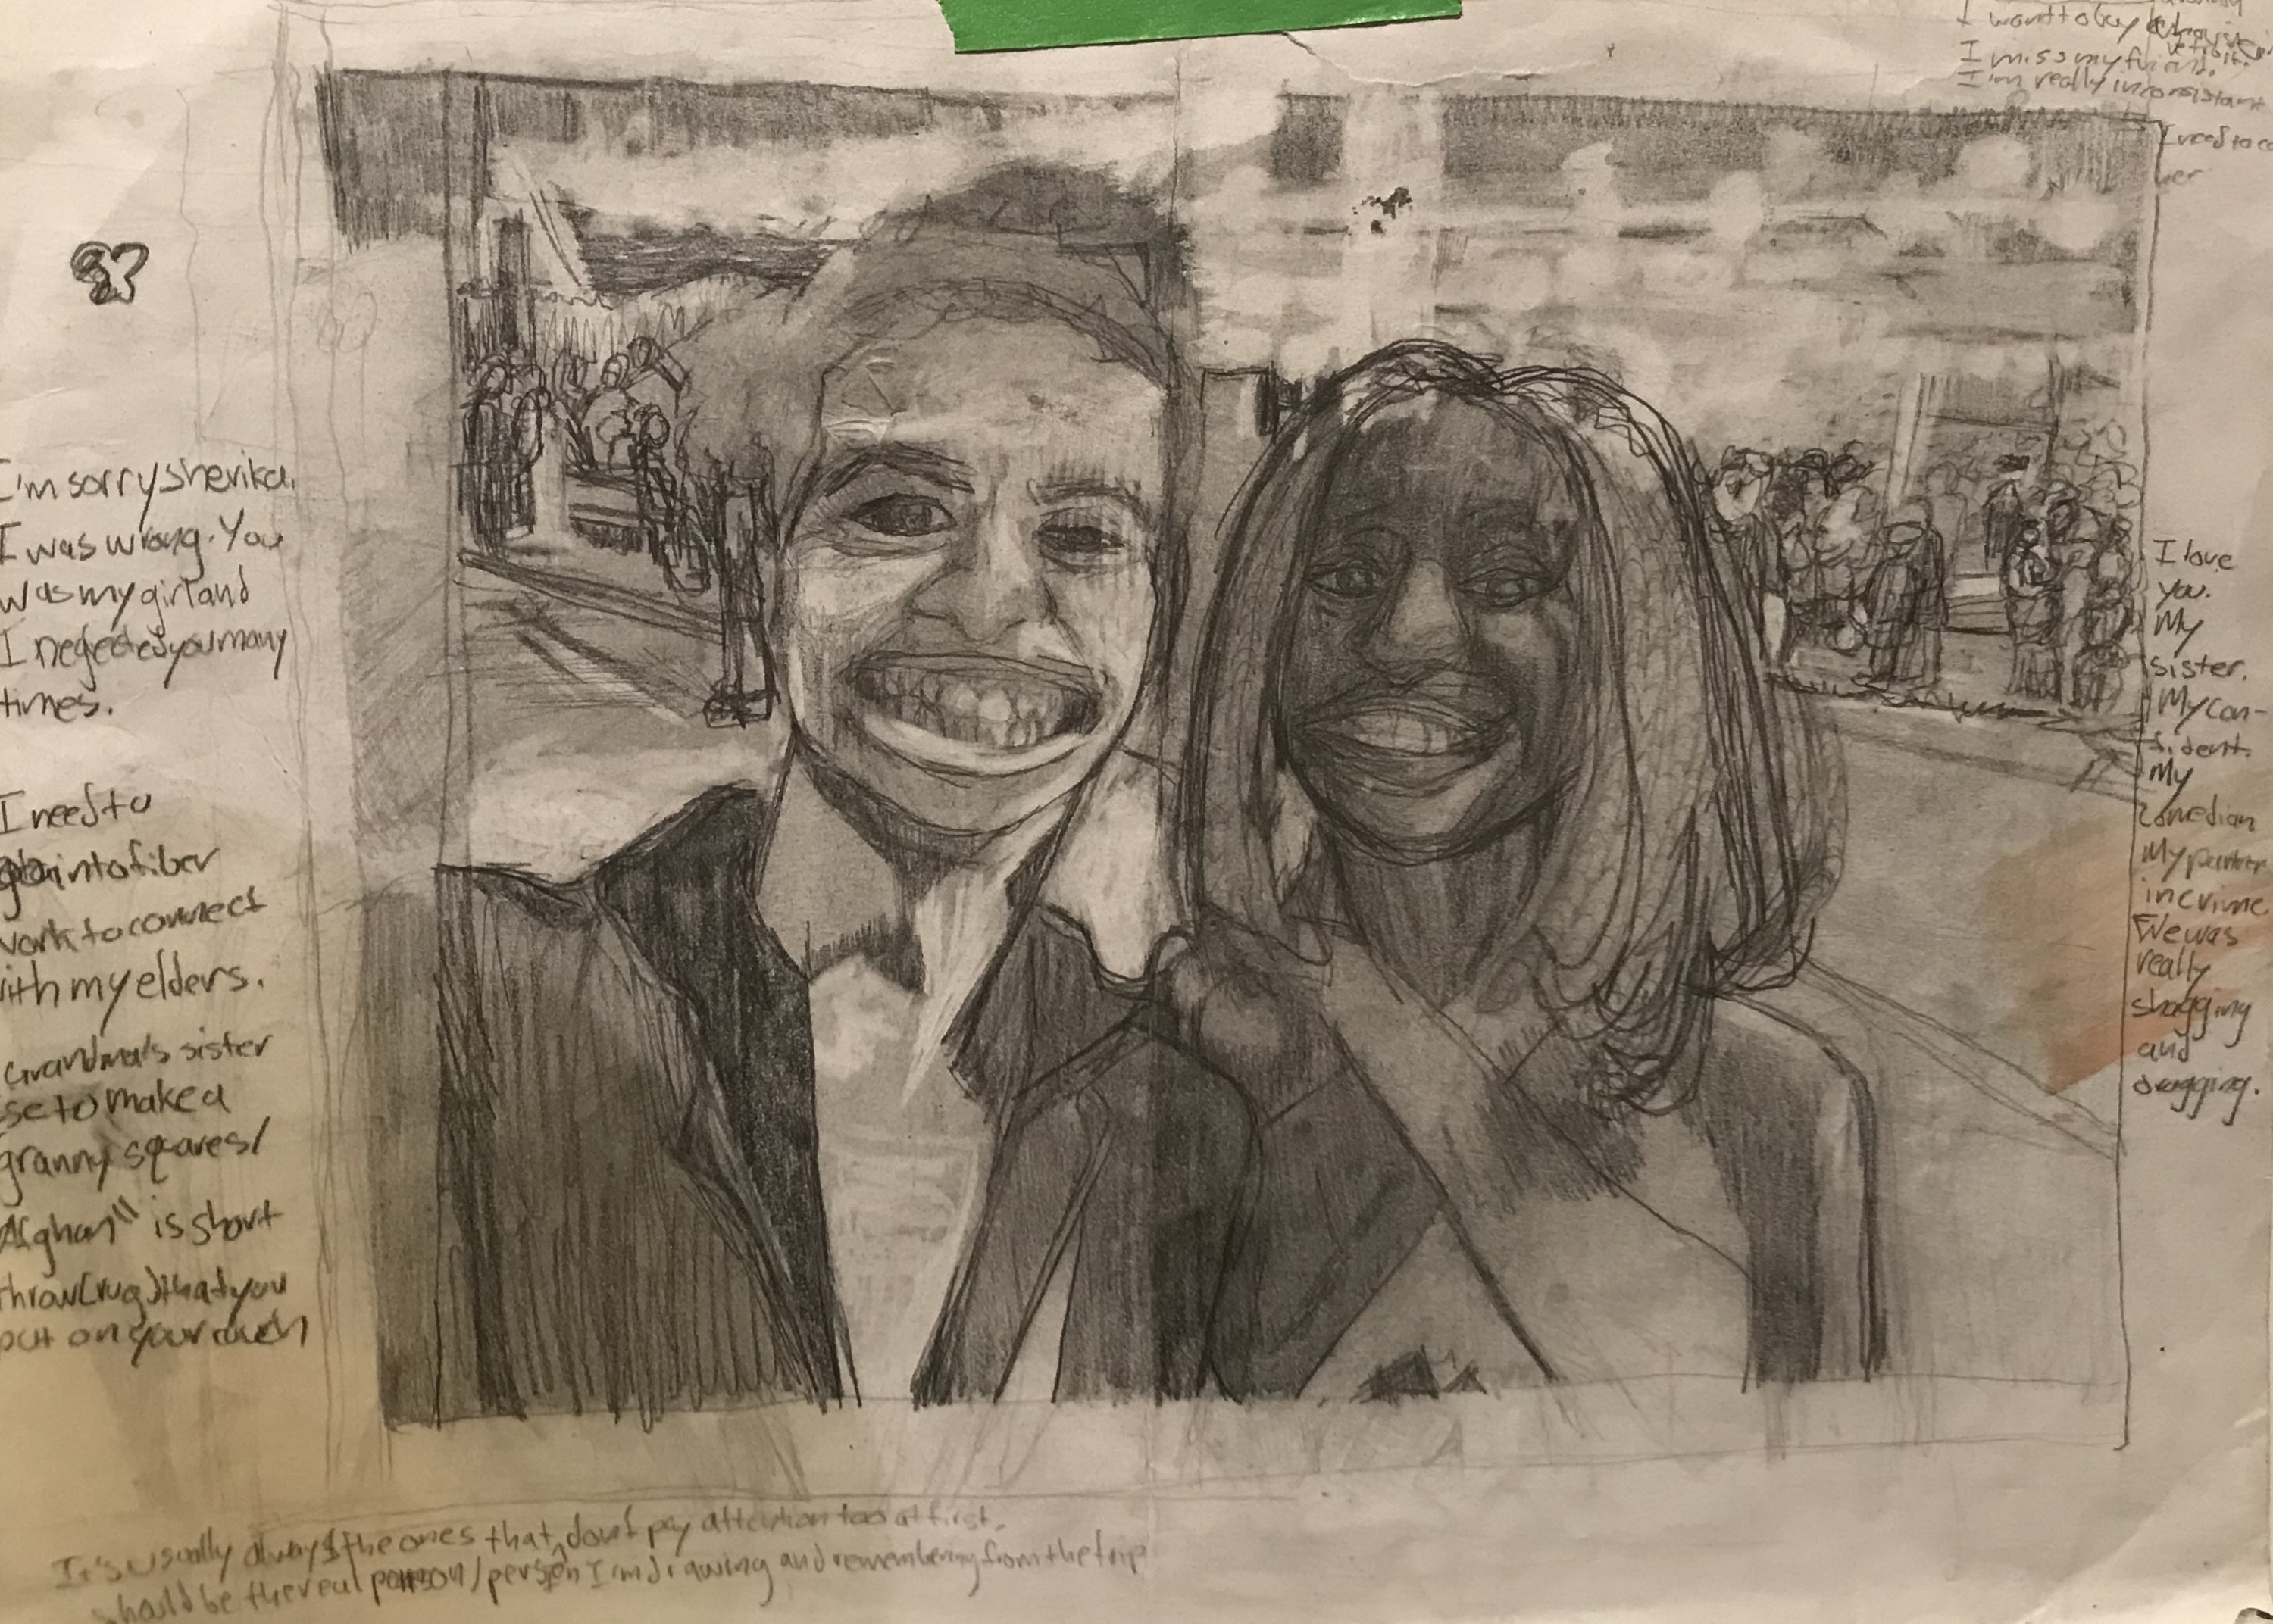 This is a study I created during Fall 2020 when I was struggling in MAT. This semester reminded me of my struggles studying abroad. Sherika and I persevered with teamwork and laughter. I drew this memory of us to reflect on our experiences. I wanted to re